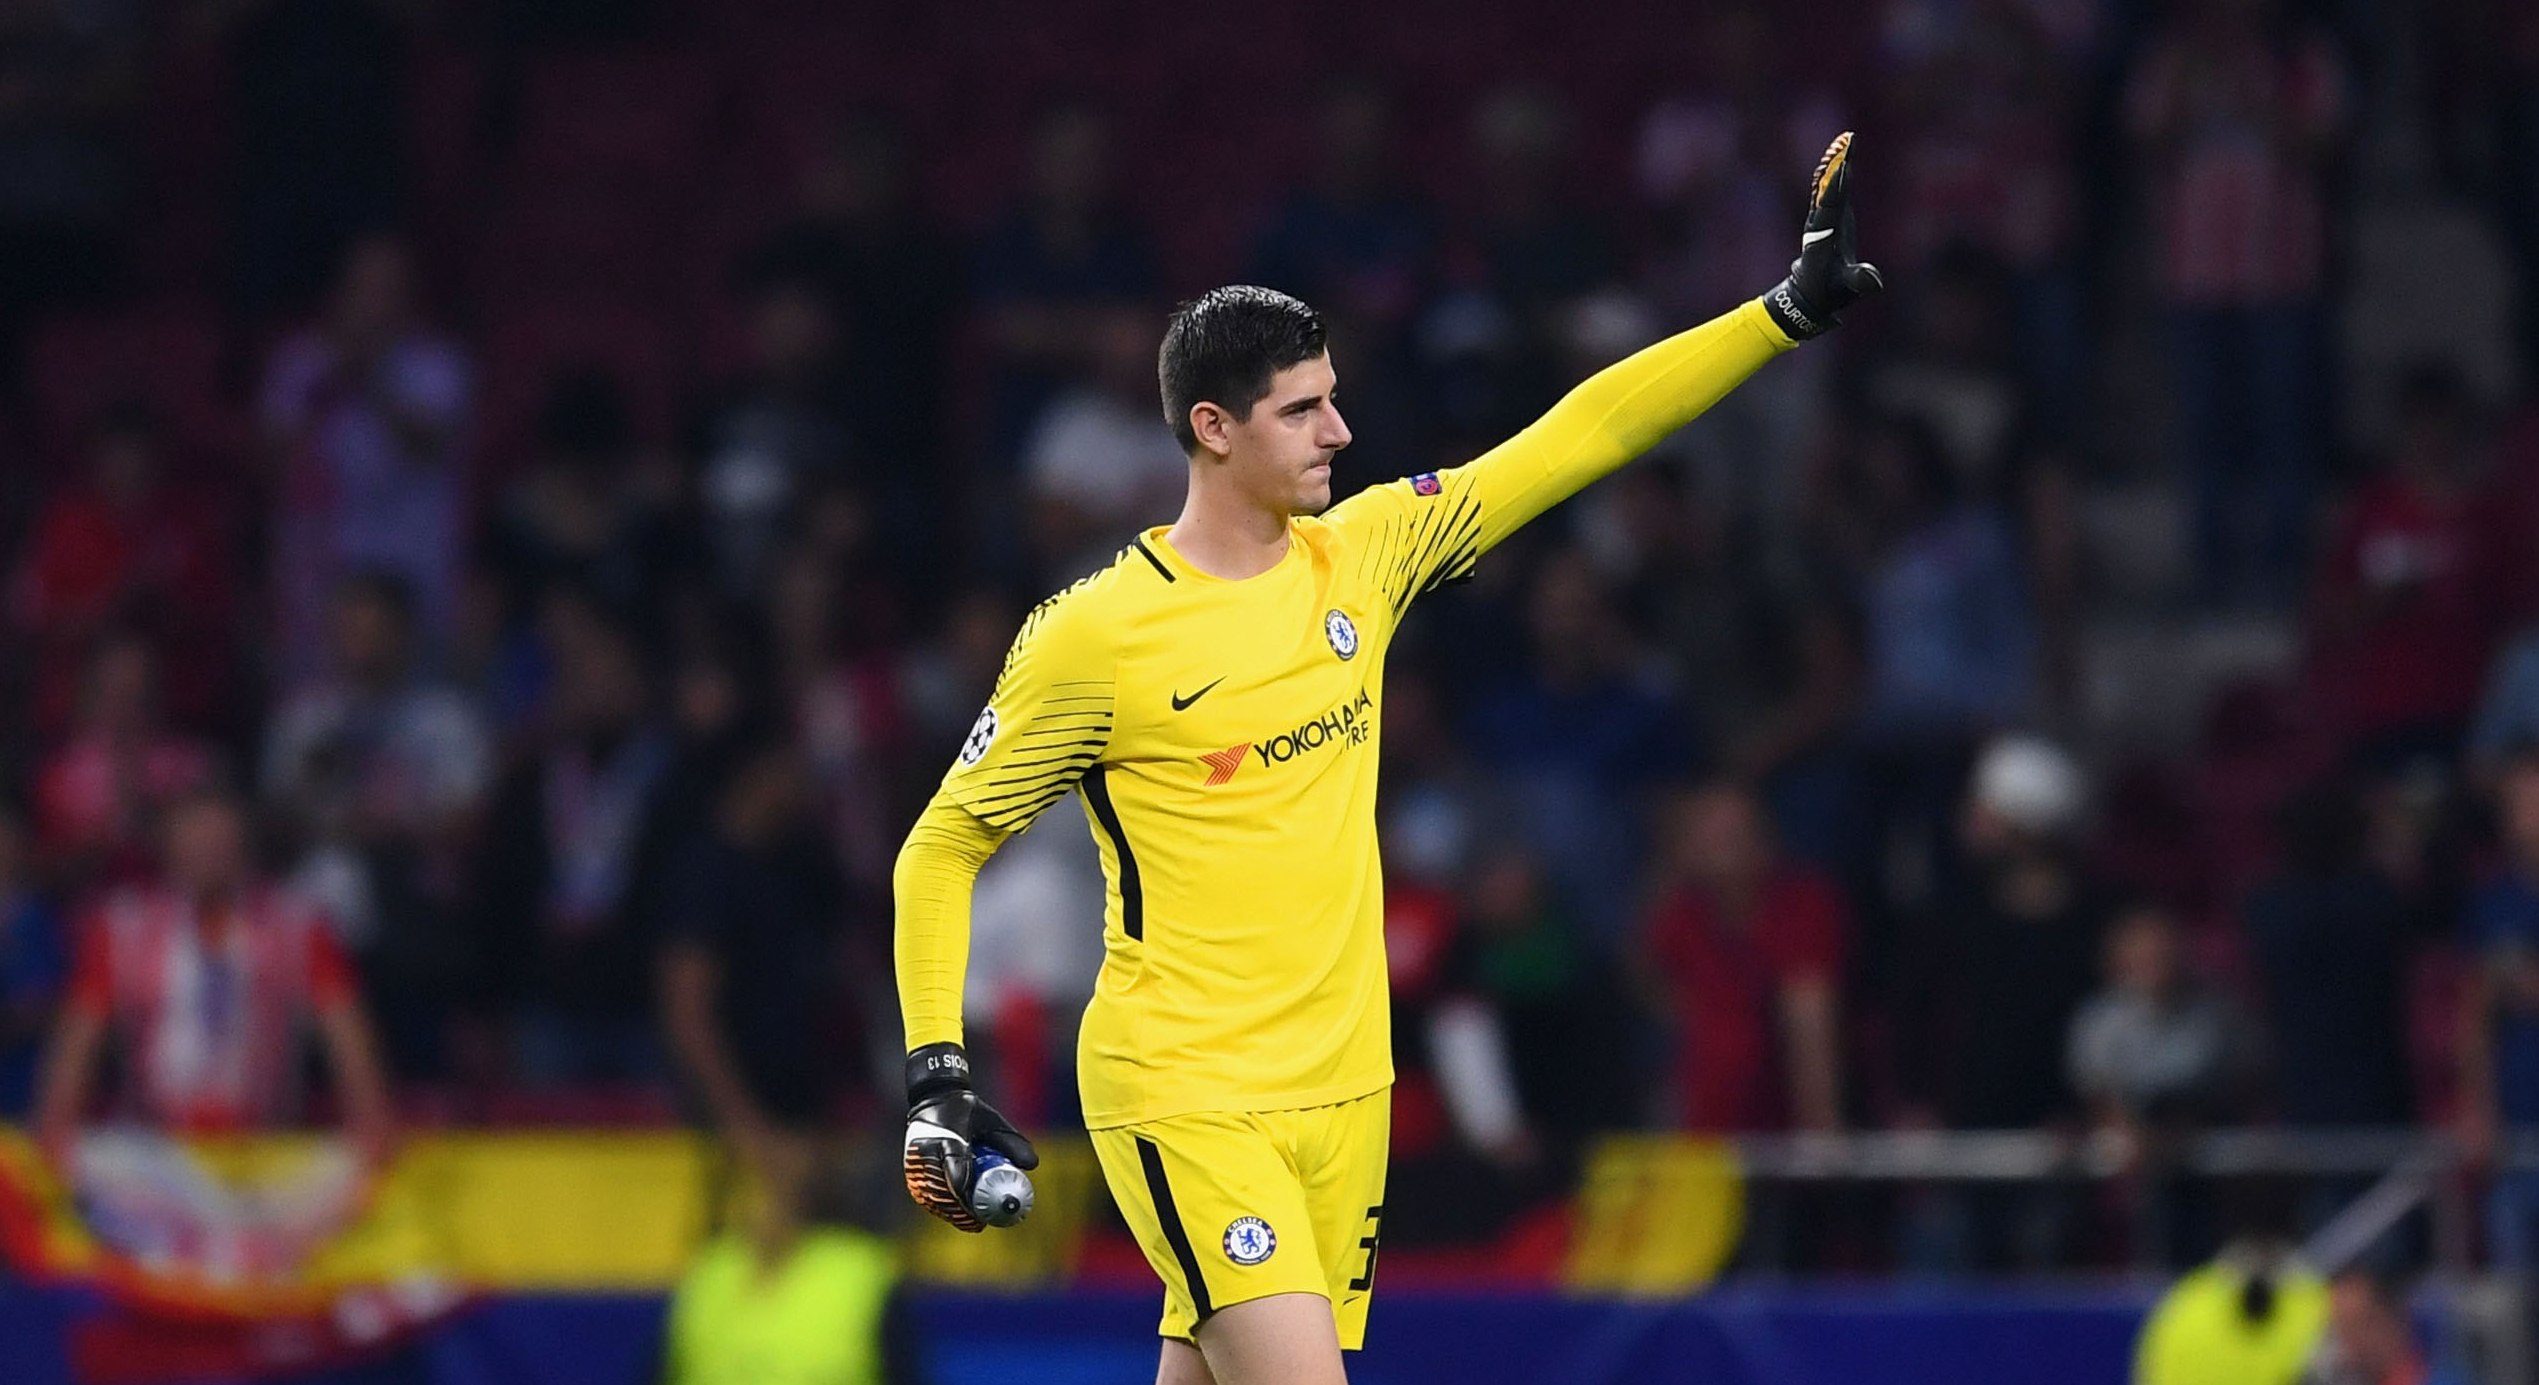 Courtois continua sem renovar à espera do Real Madrid